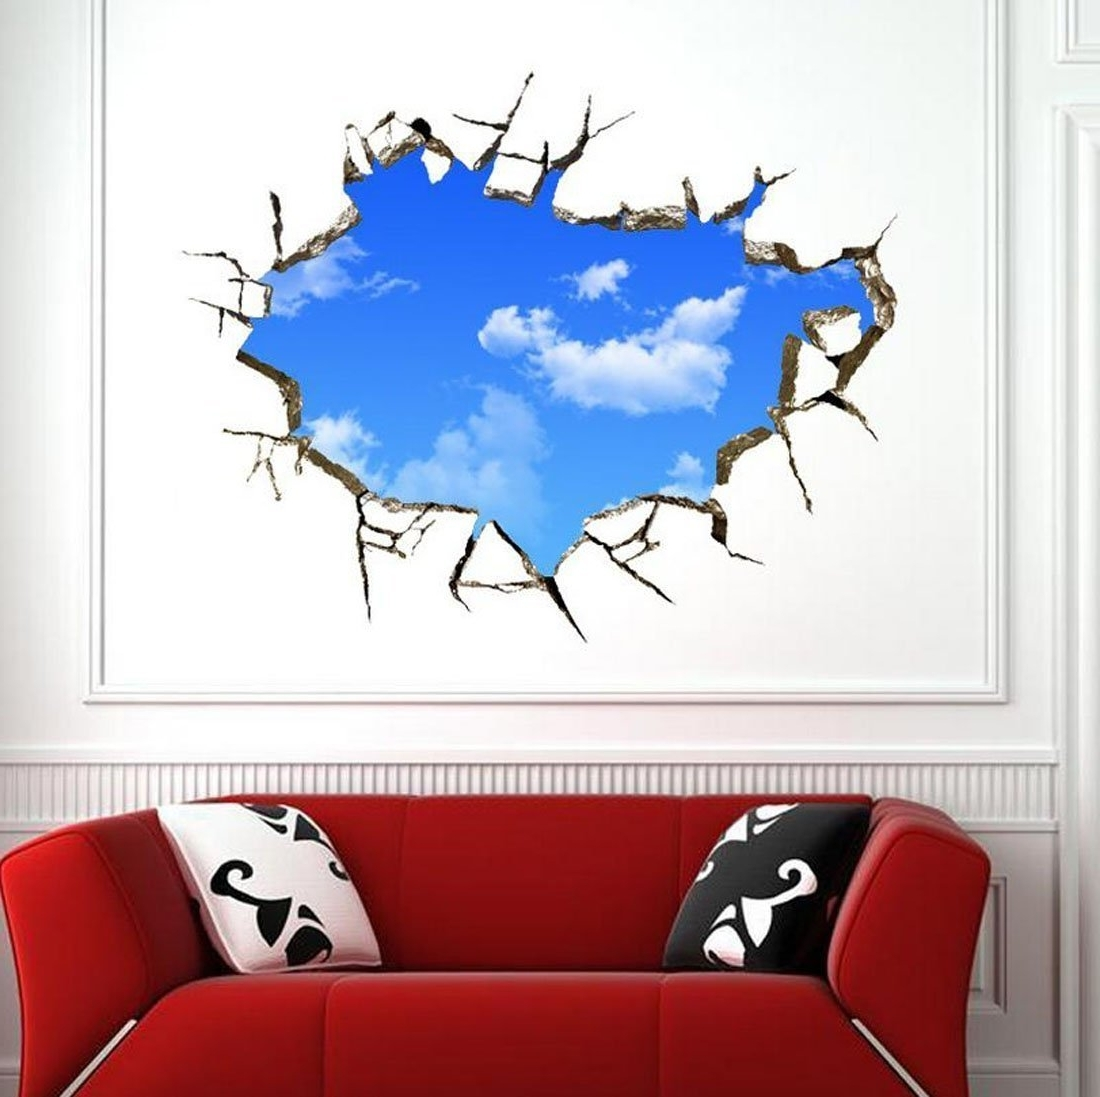 Newest 3D Wall Art For Bedrooms In Amazon: Sajanic 3D Blue Sky Wall Stickers For Ceiling Real (View 12 of 15)